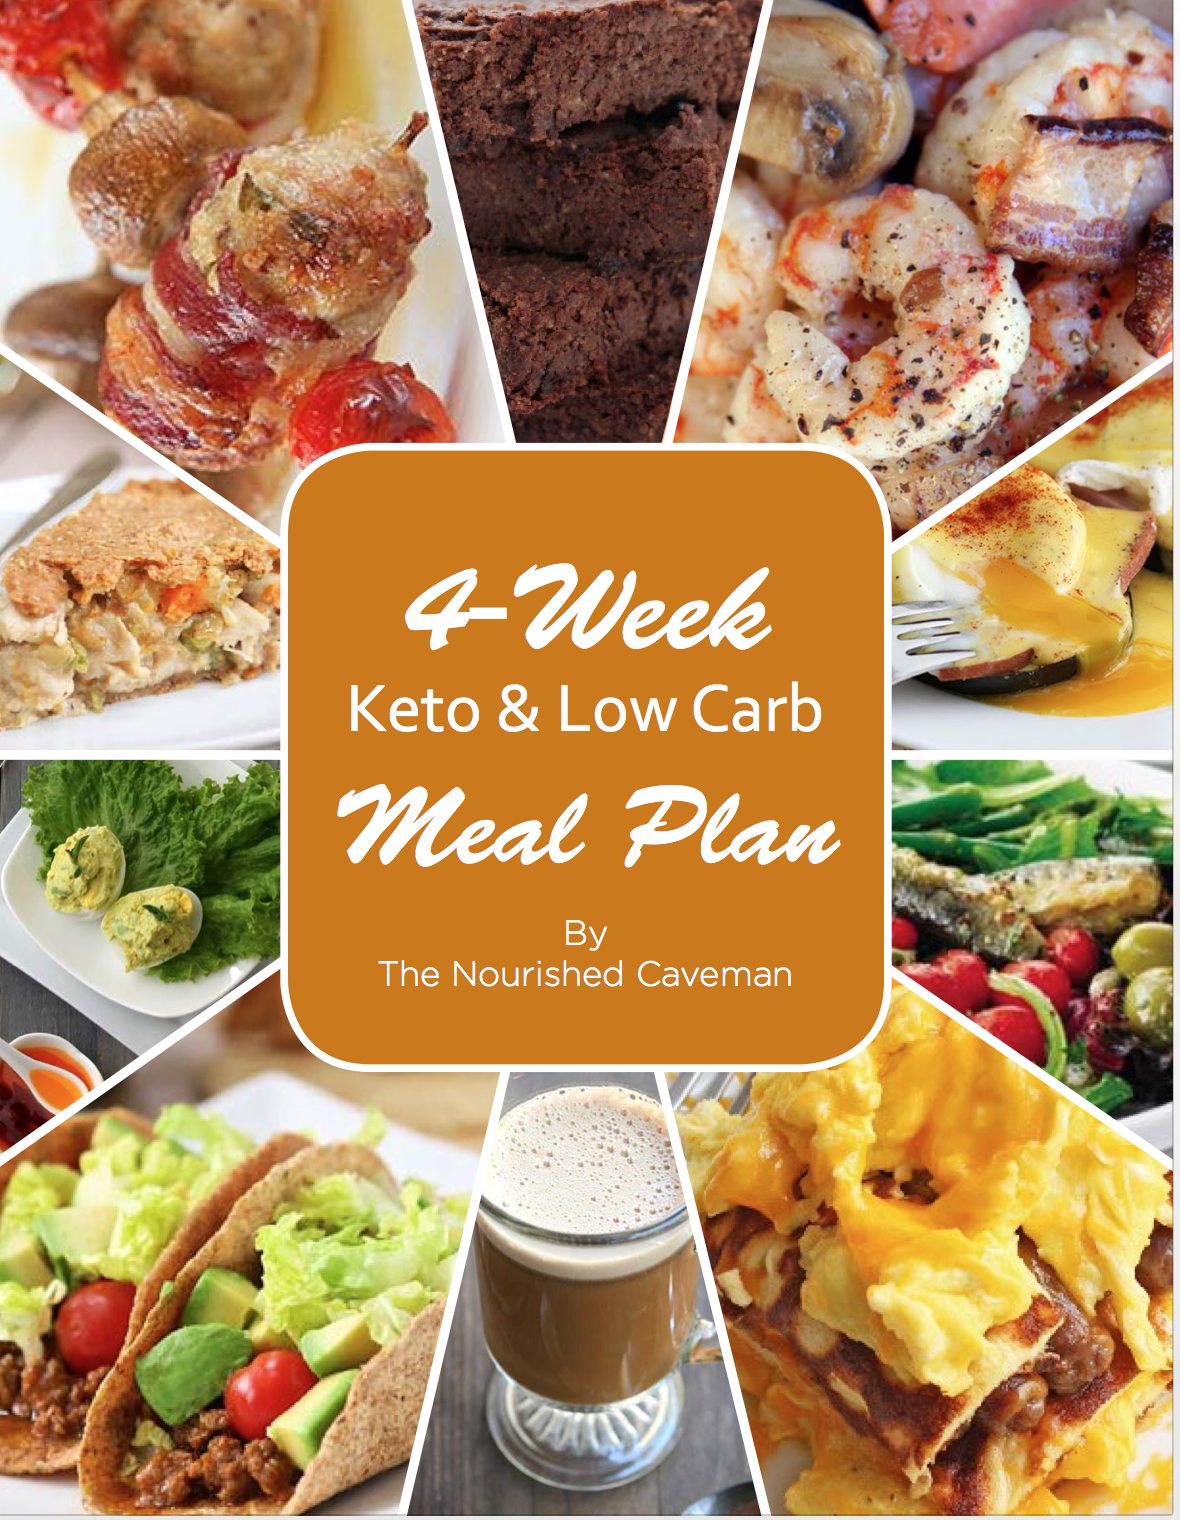 4 week keto low carb meal plan the nourished caveman. Black Bedroom Furniture Sets. Home Design Ideas